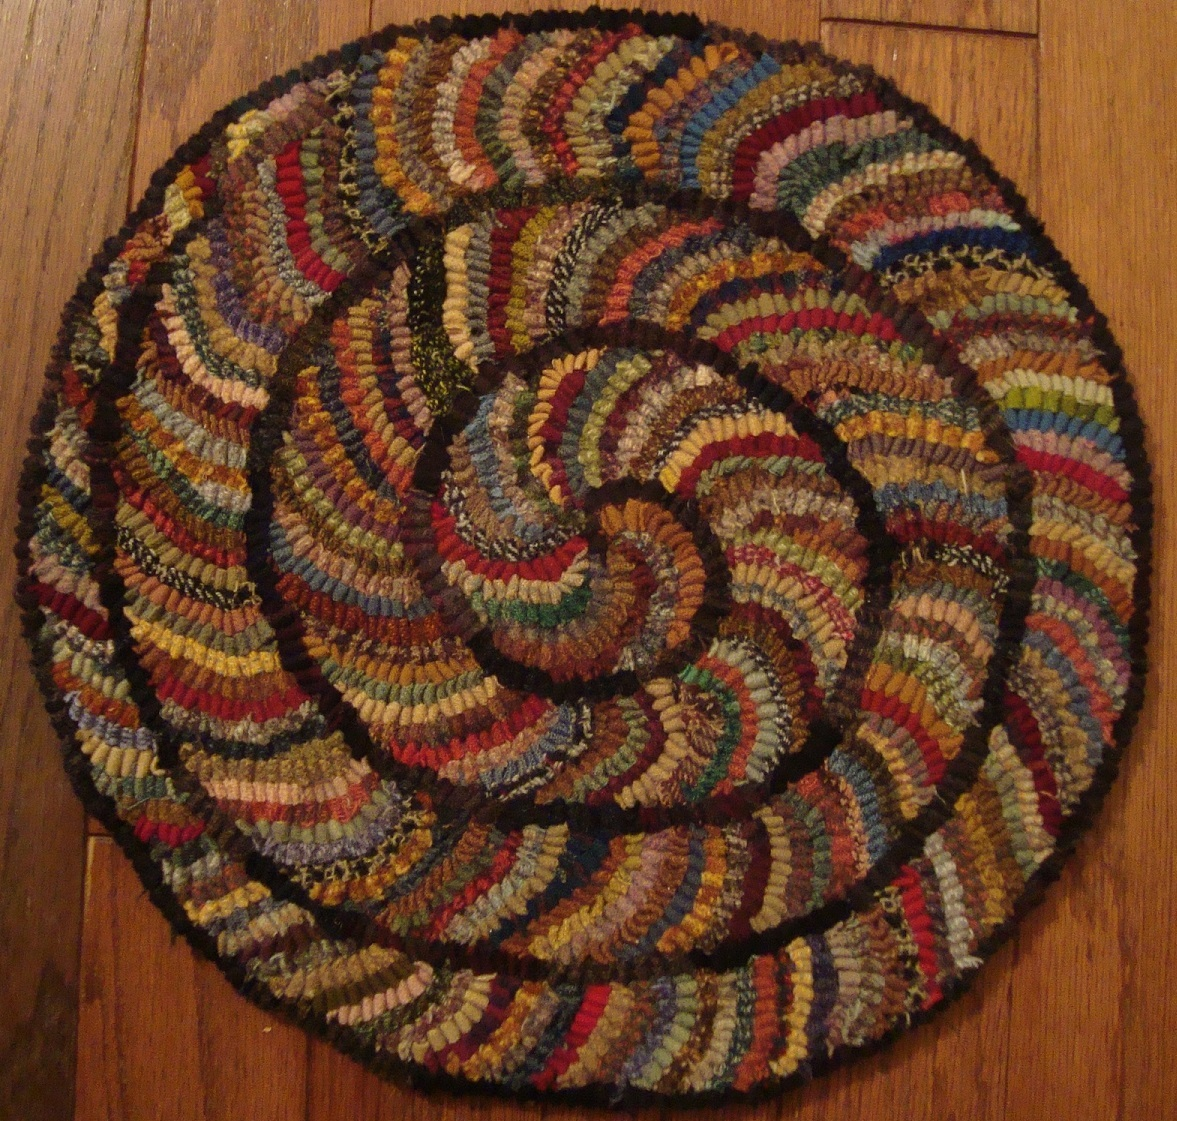 While Perusing Active Blogs Noticed Karen Kahle Providing A Tutorial On  Hooking A Spiral Chair Pad. Thought It A Way To Use Up Some Worms So Drew  One Up And ...